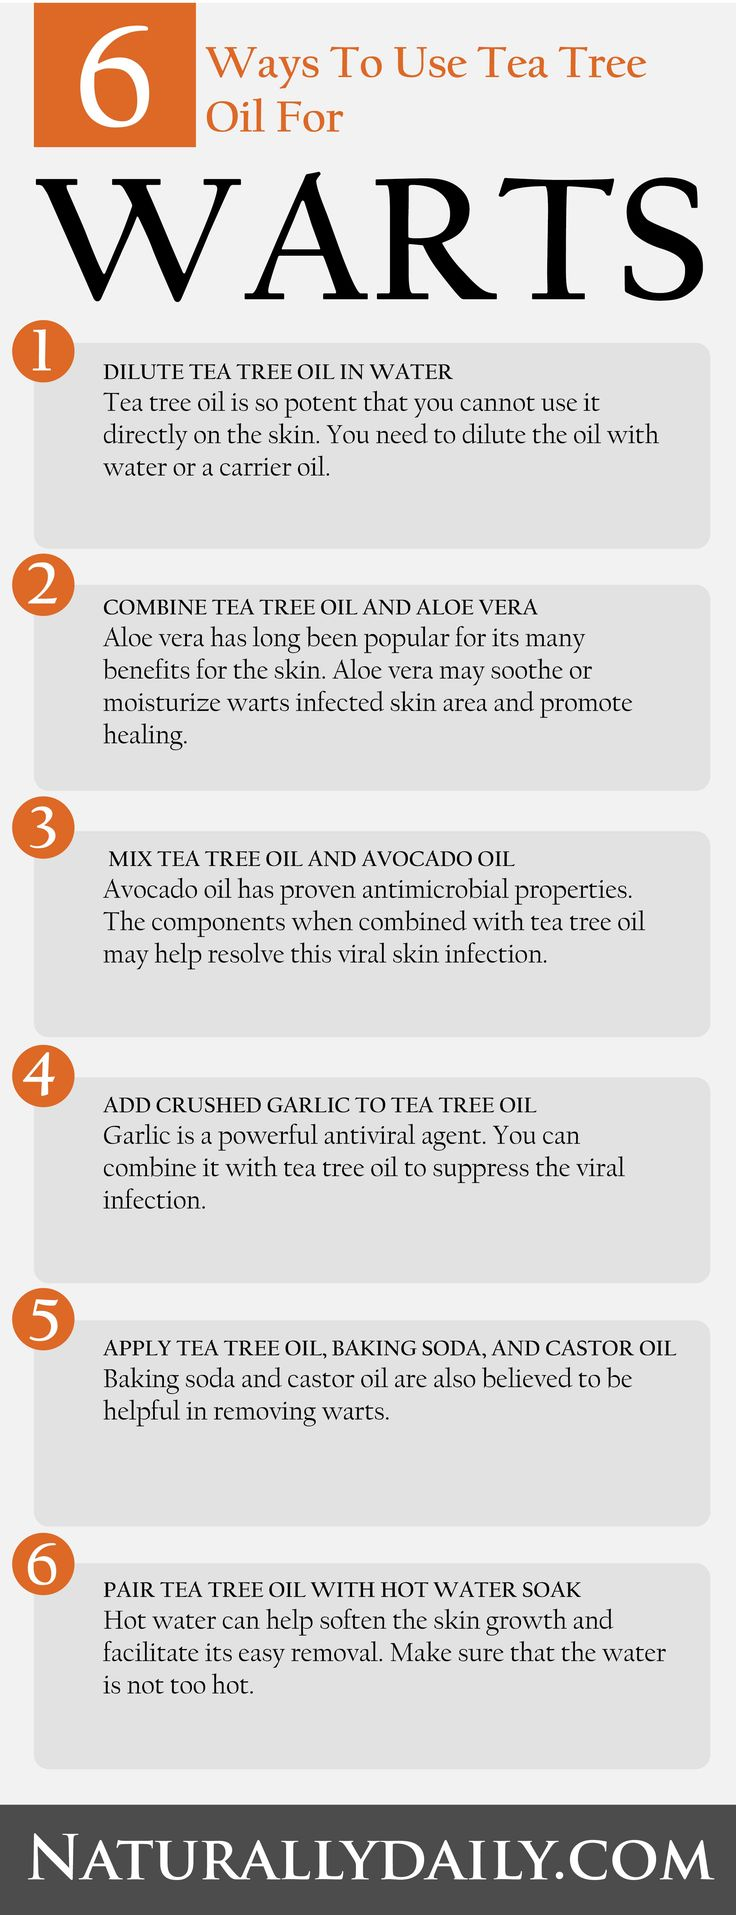 11 Efficient Methods to Use Tea Tree Oil for Warts